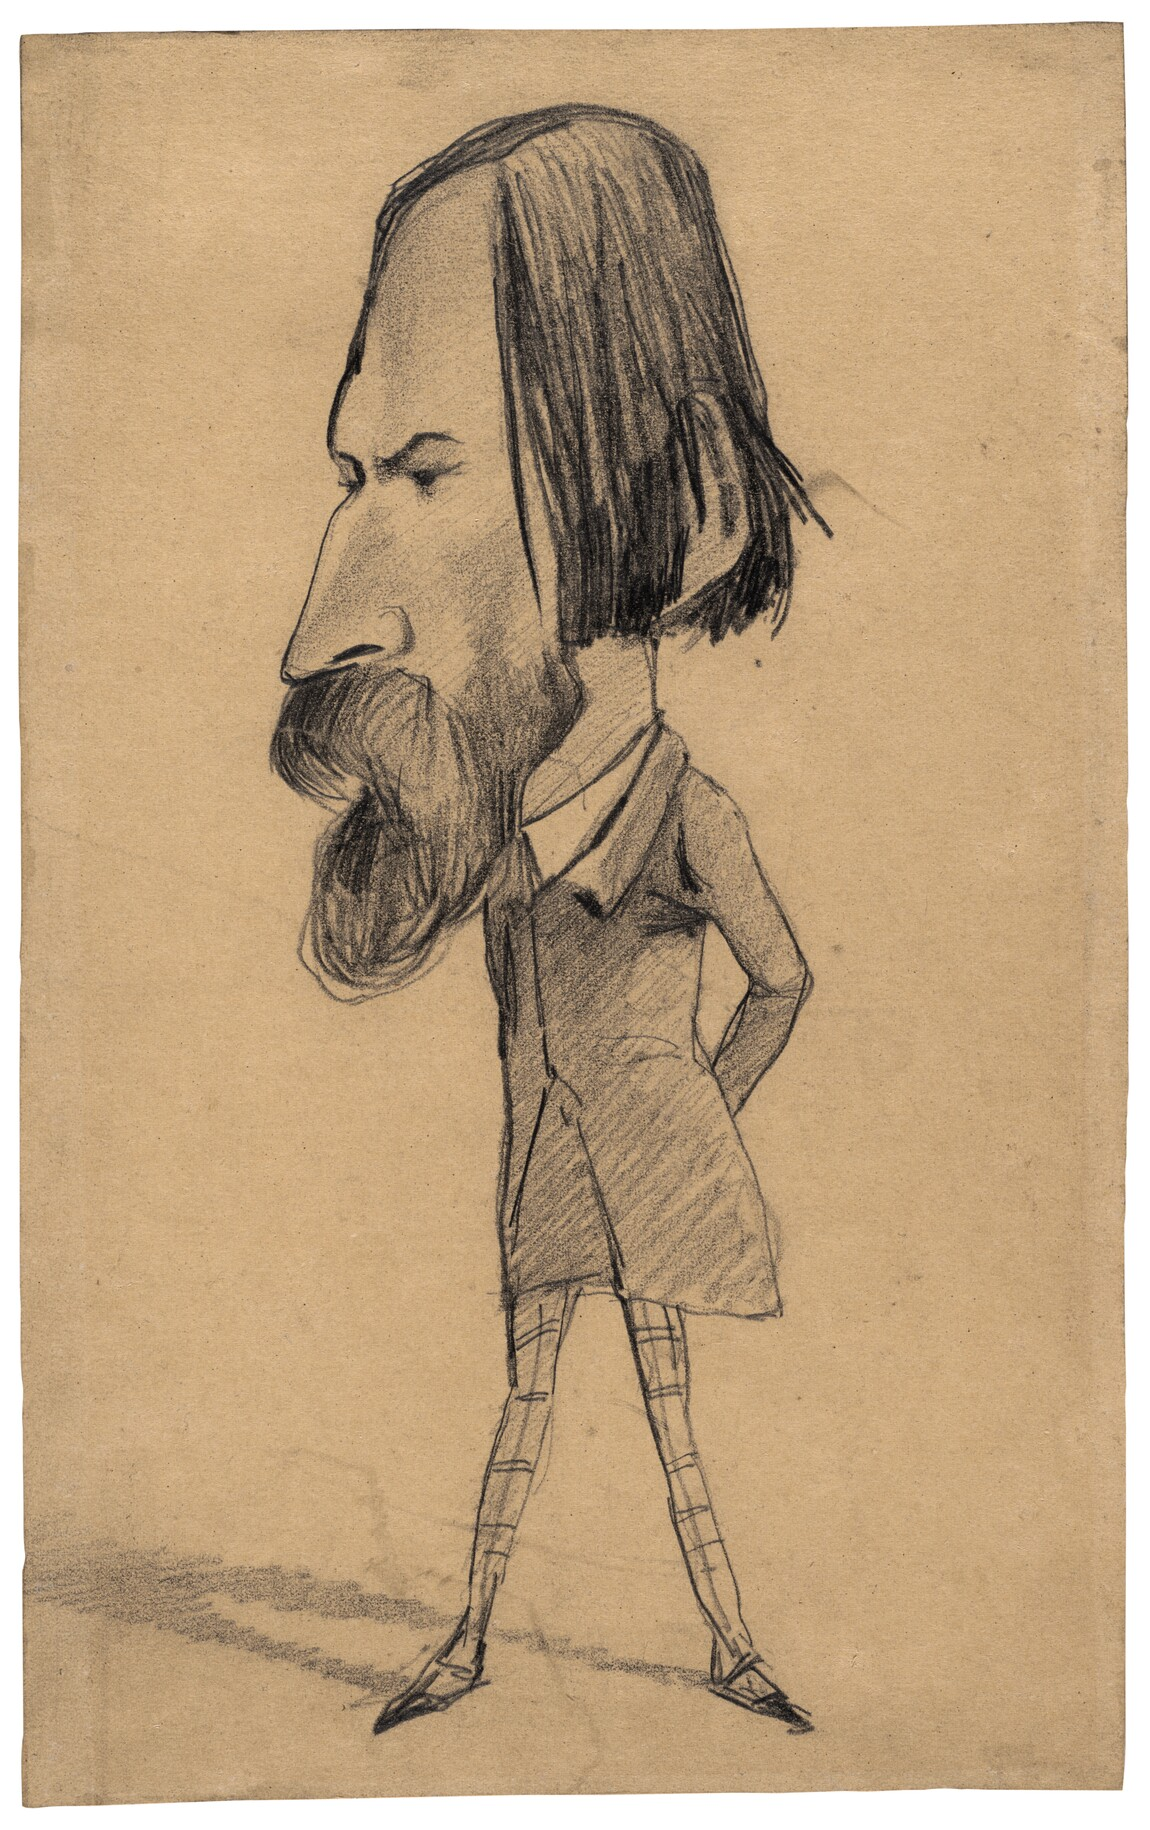 Noseresults How To Draw Cat 1 Caricature Of Auguste Vacquerie, C 1859 View  Larger Image